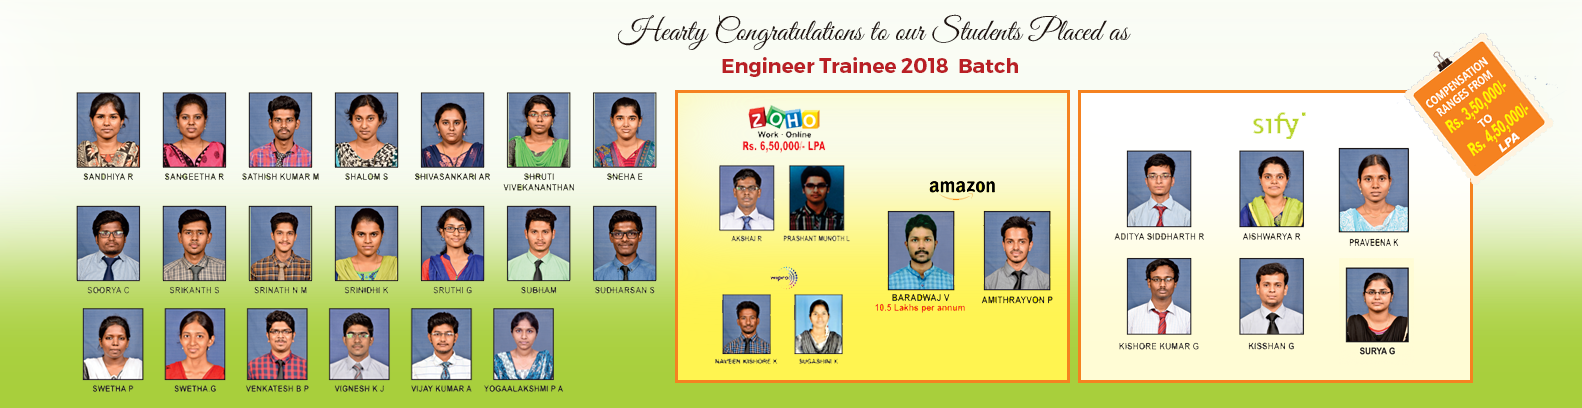 Engineer_trainee_2018_2